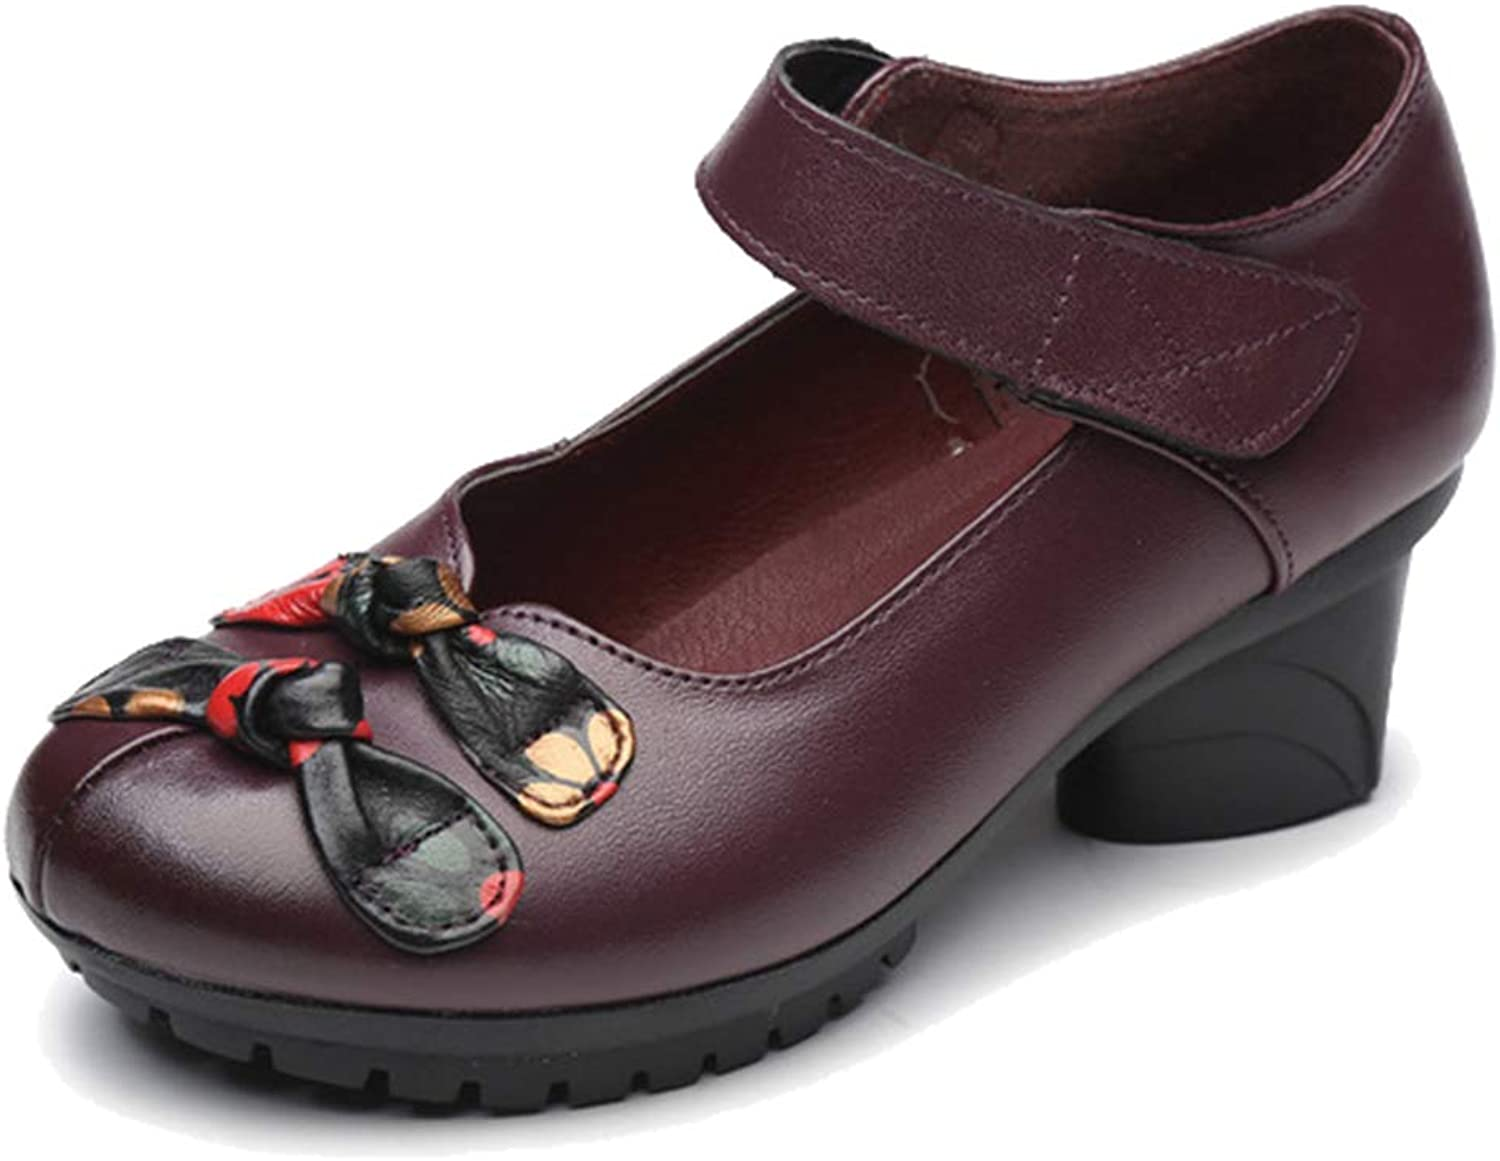 Femaroly Women Leather Casual Walking shoes Middle-Aged Buckle Flower Mother Breathable Dress shoes